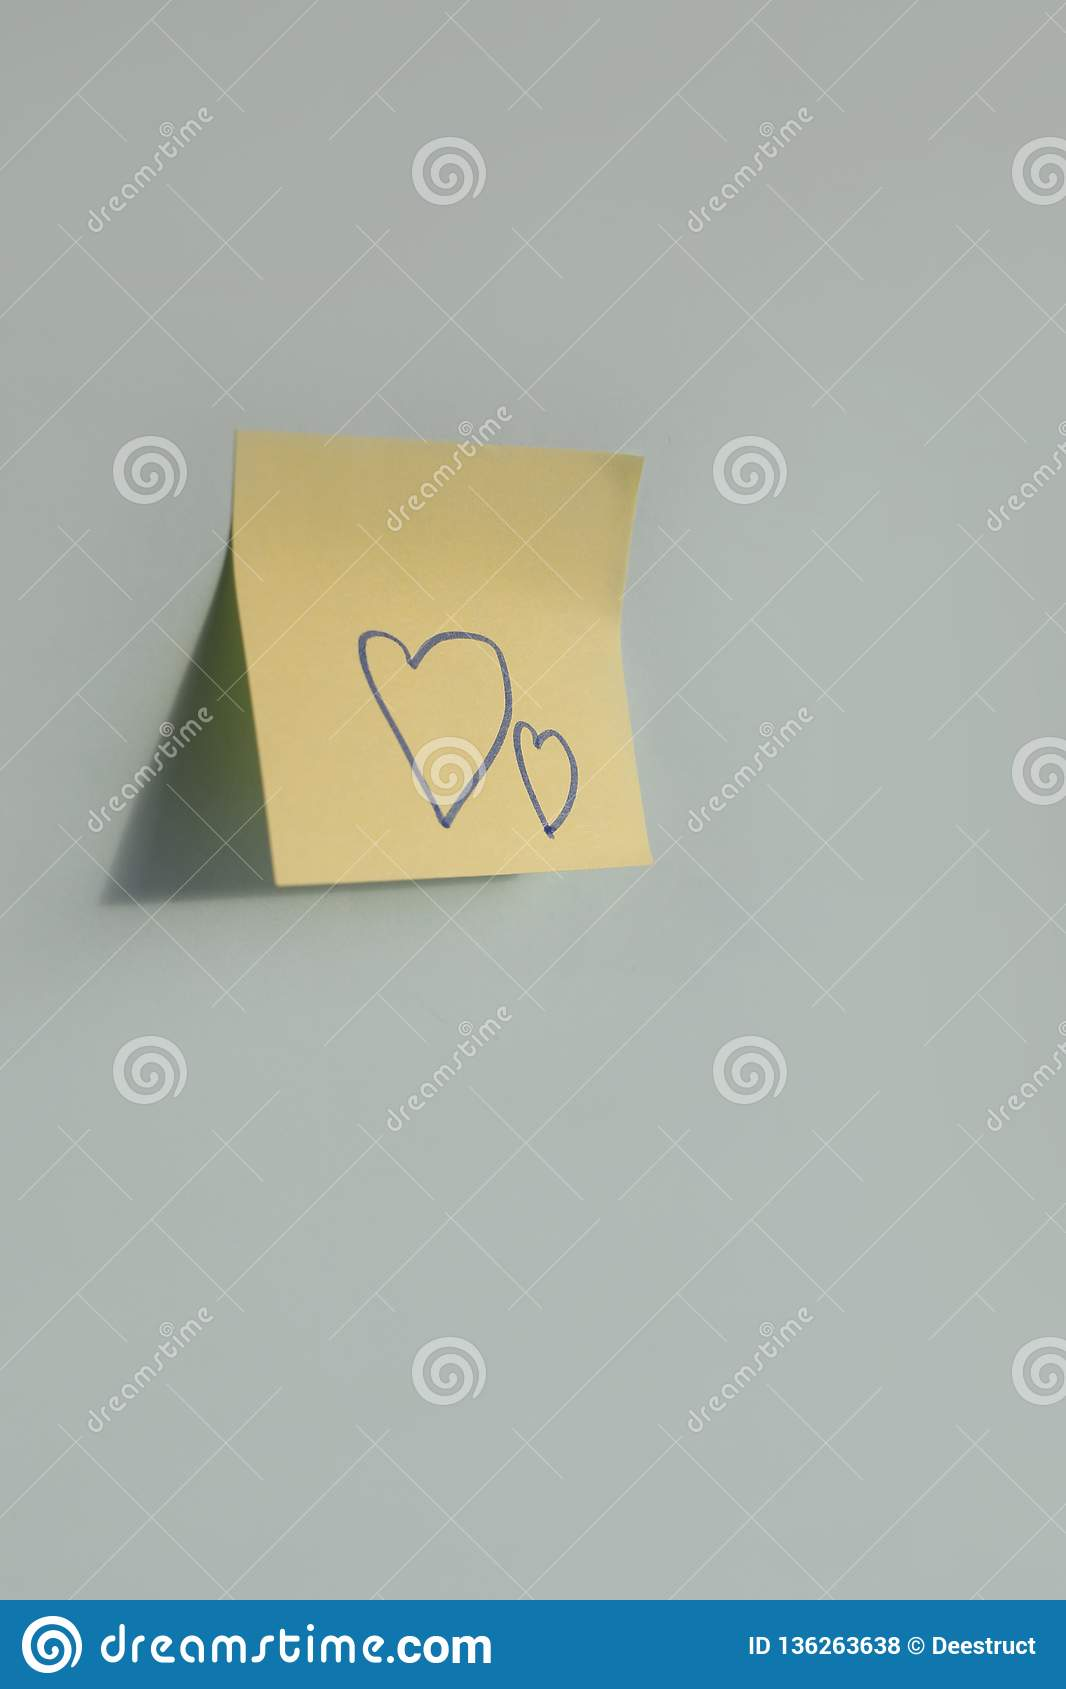 heart shapes handwritten on paper sticker on the blue background